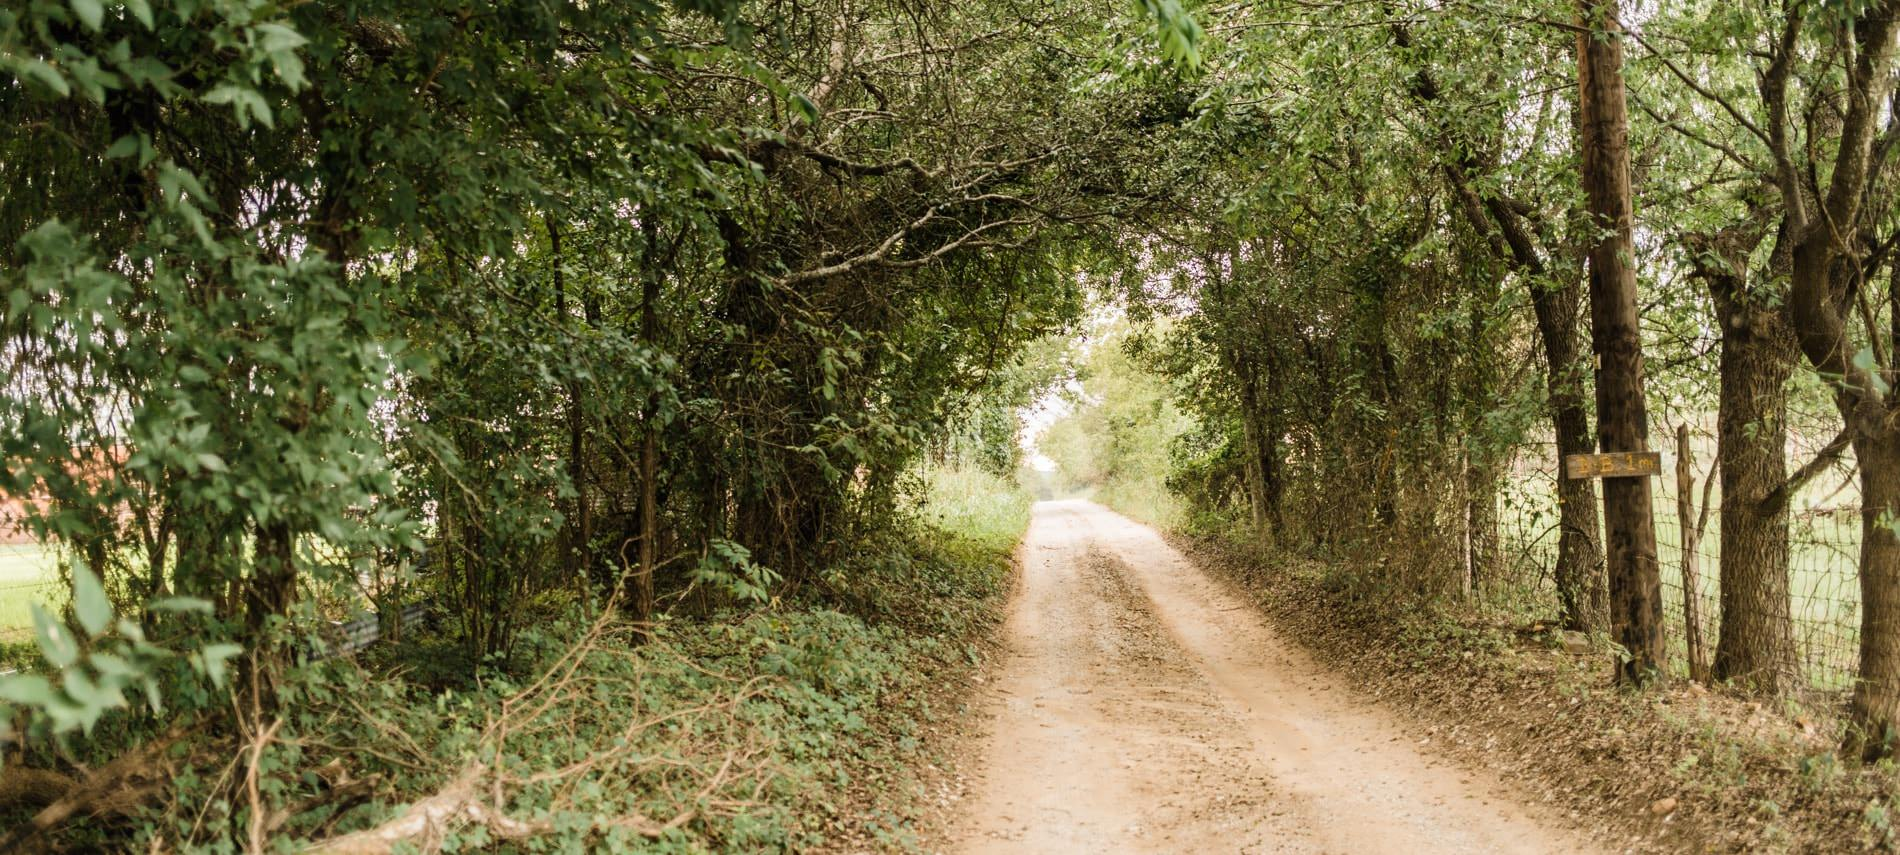 Dirt road surrounded by green leafy plants and trees